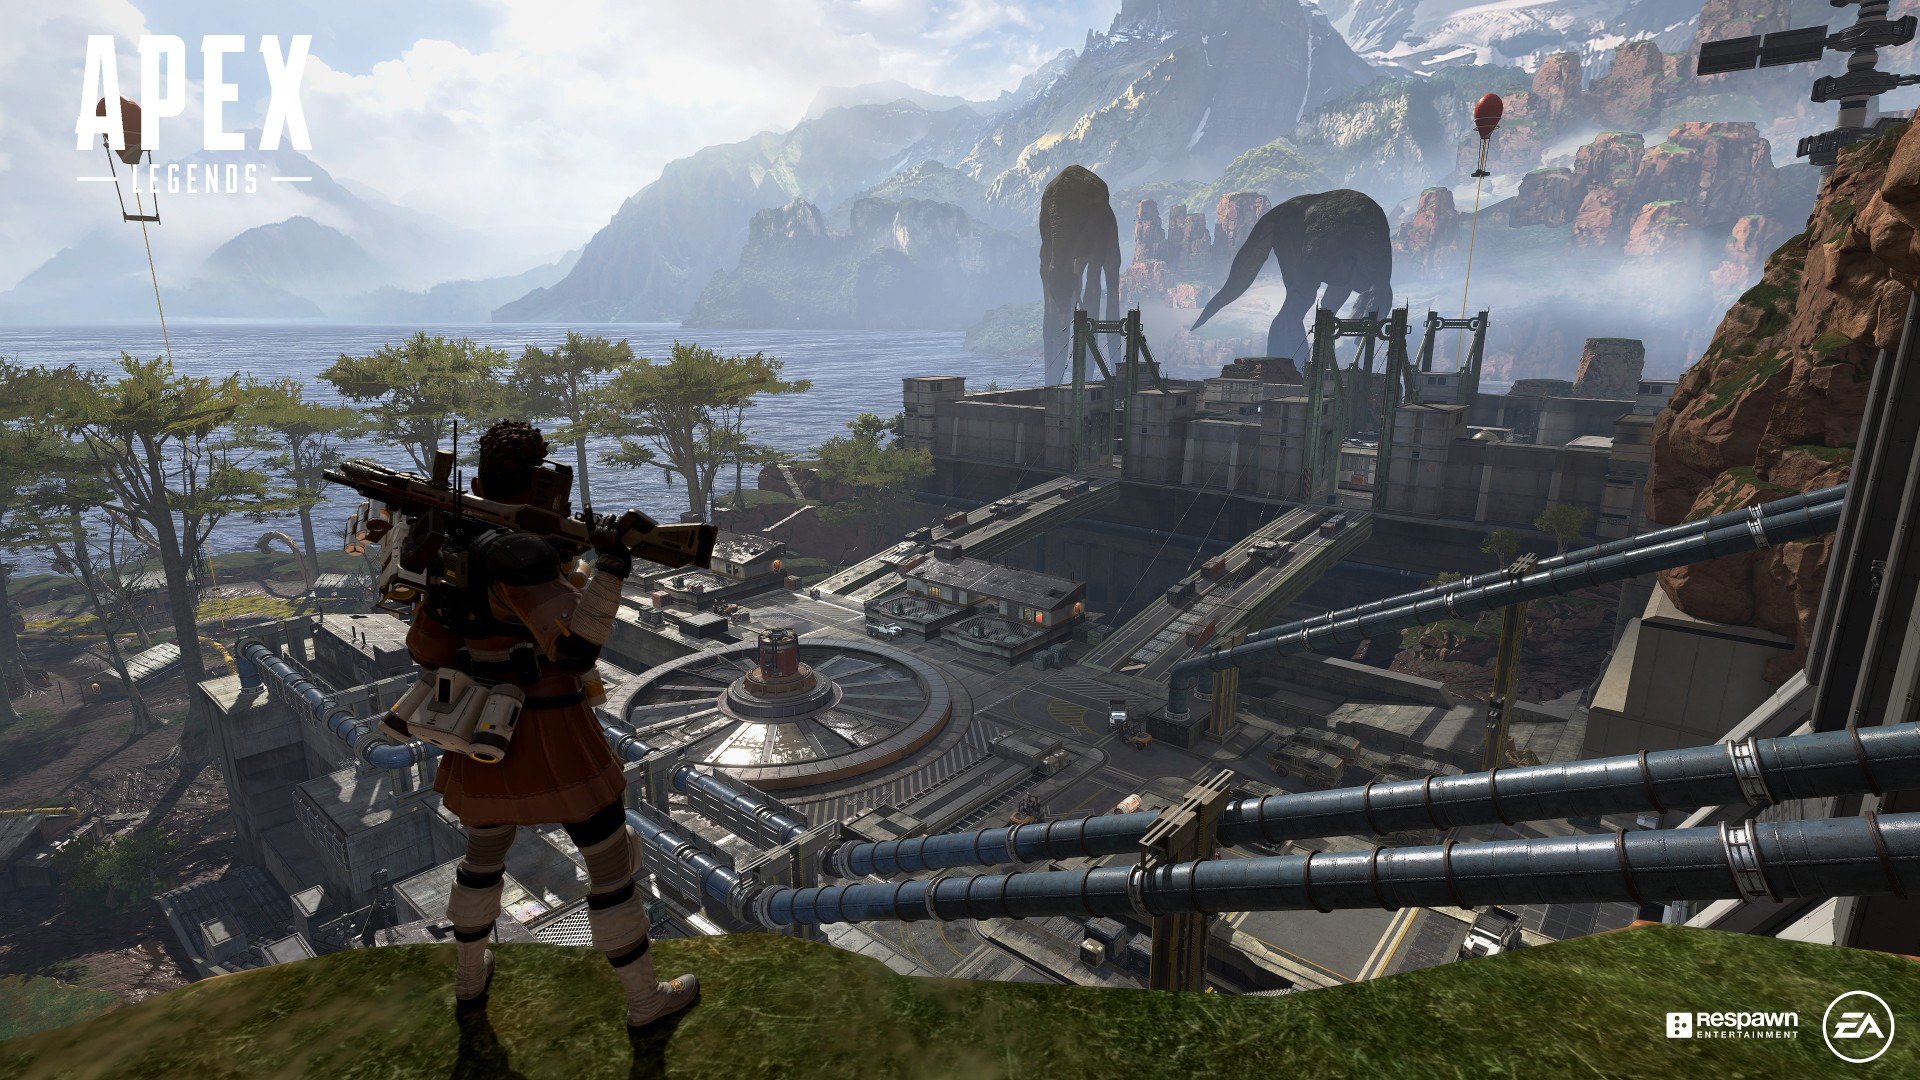 """Apex Legends deploys hotfix with """"several stability fixes"""" and solution to missing textures"""